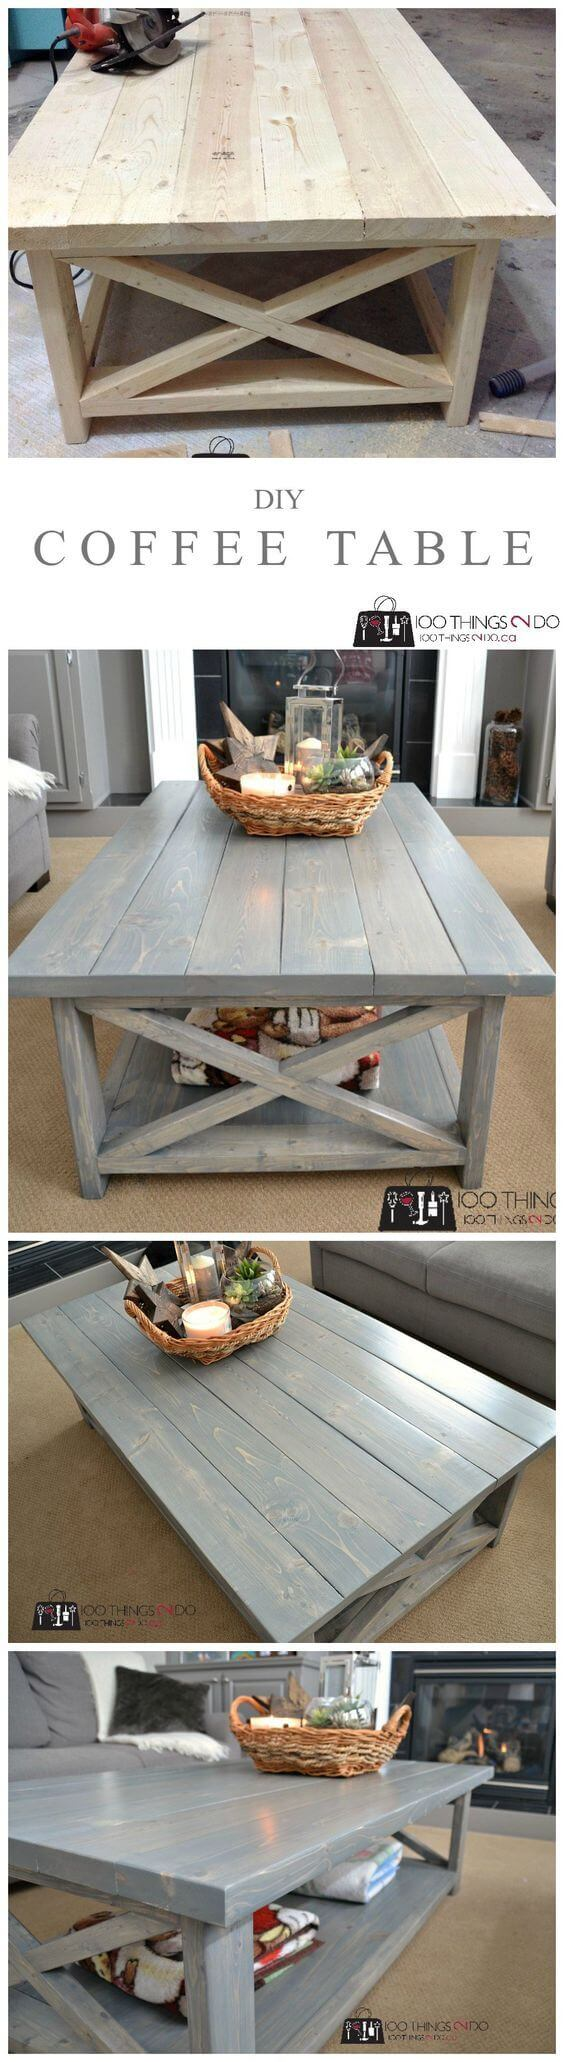 34 diy reclaimed wood projects ideas